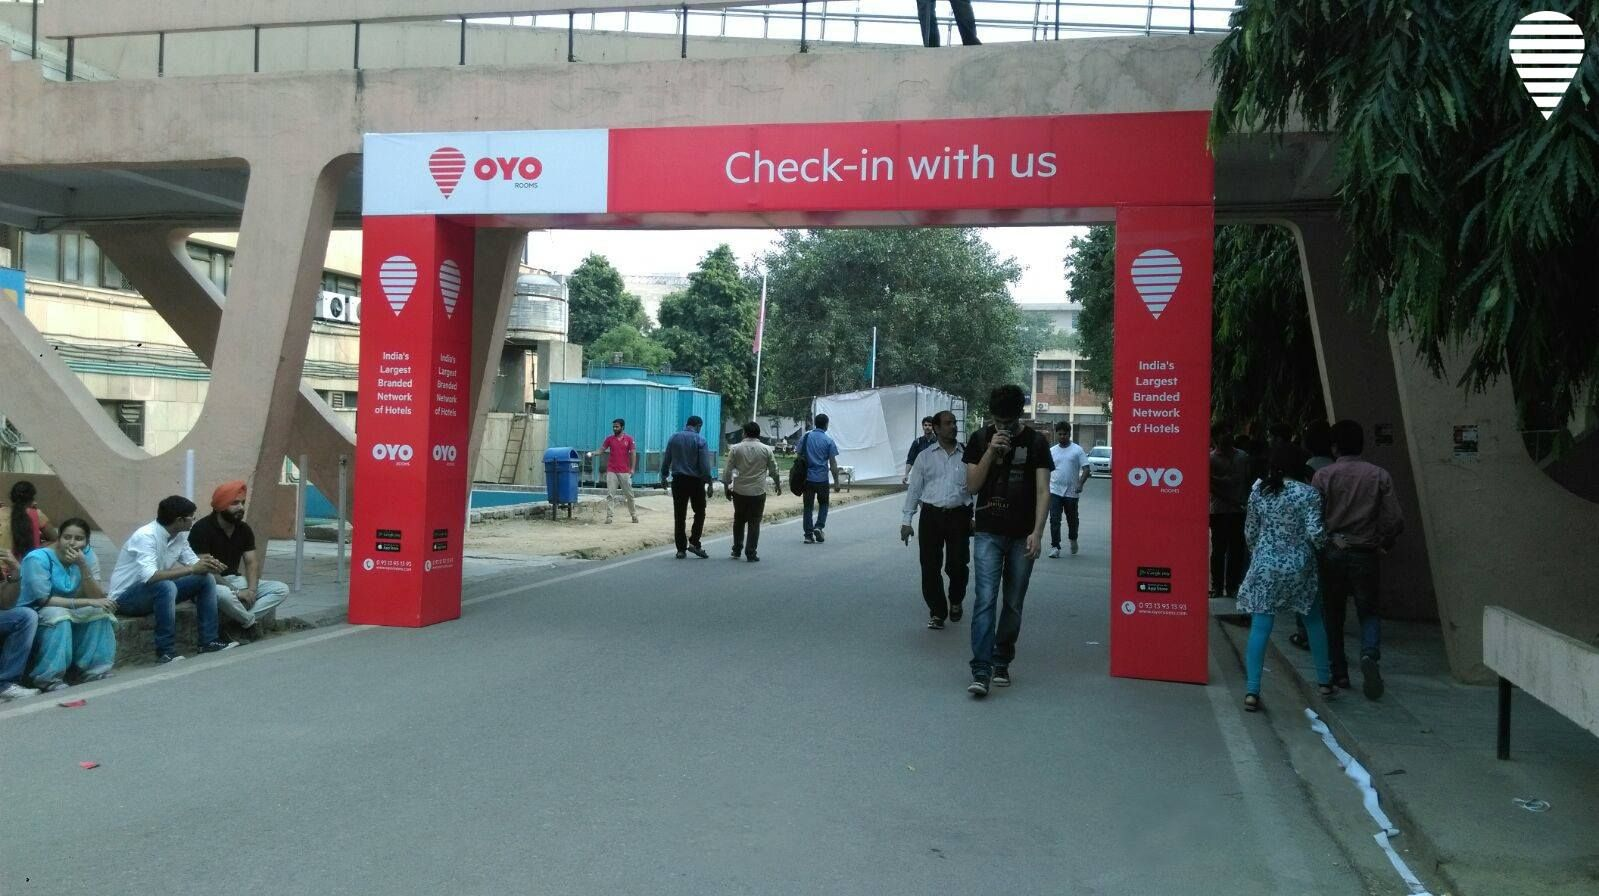 OYO at event. Oyo, Event